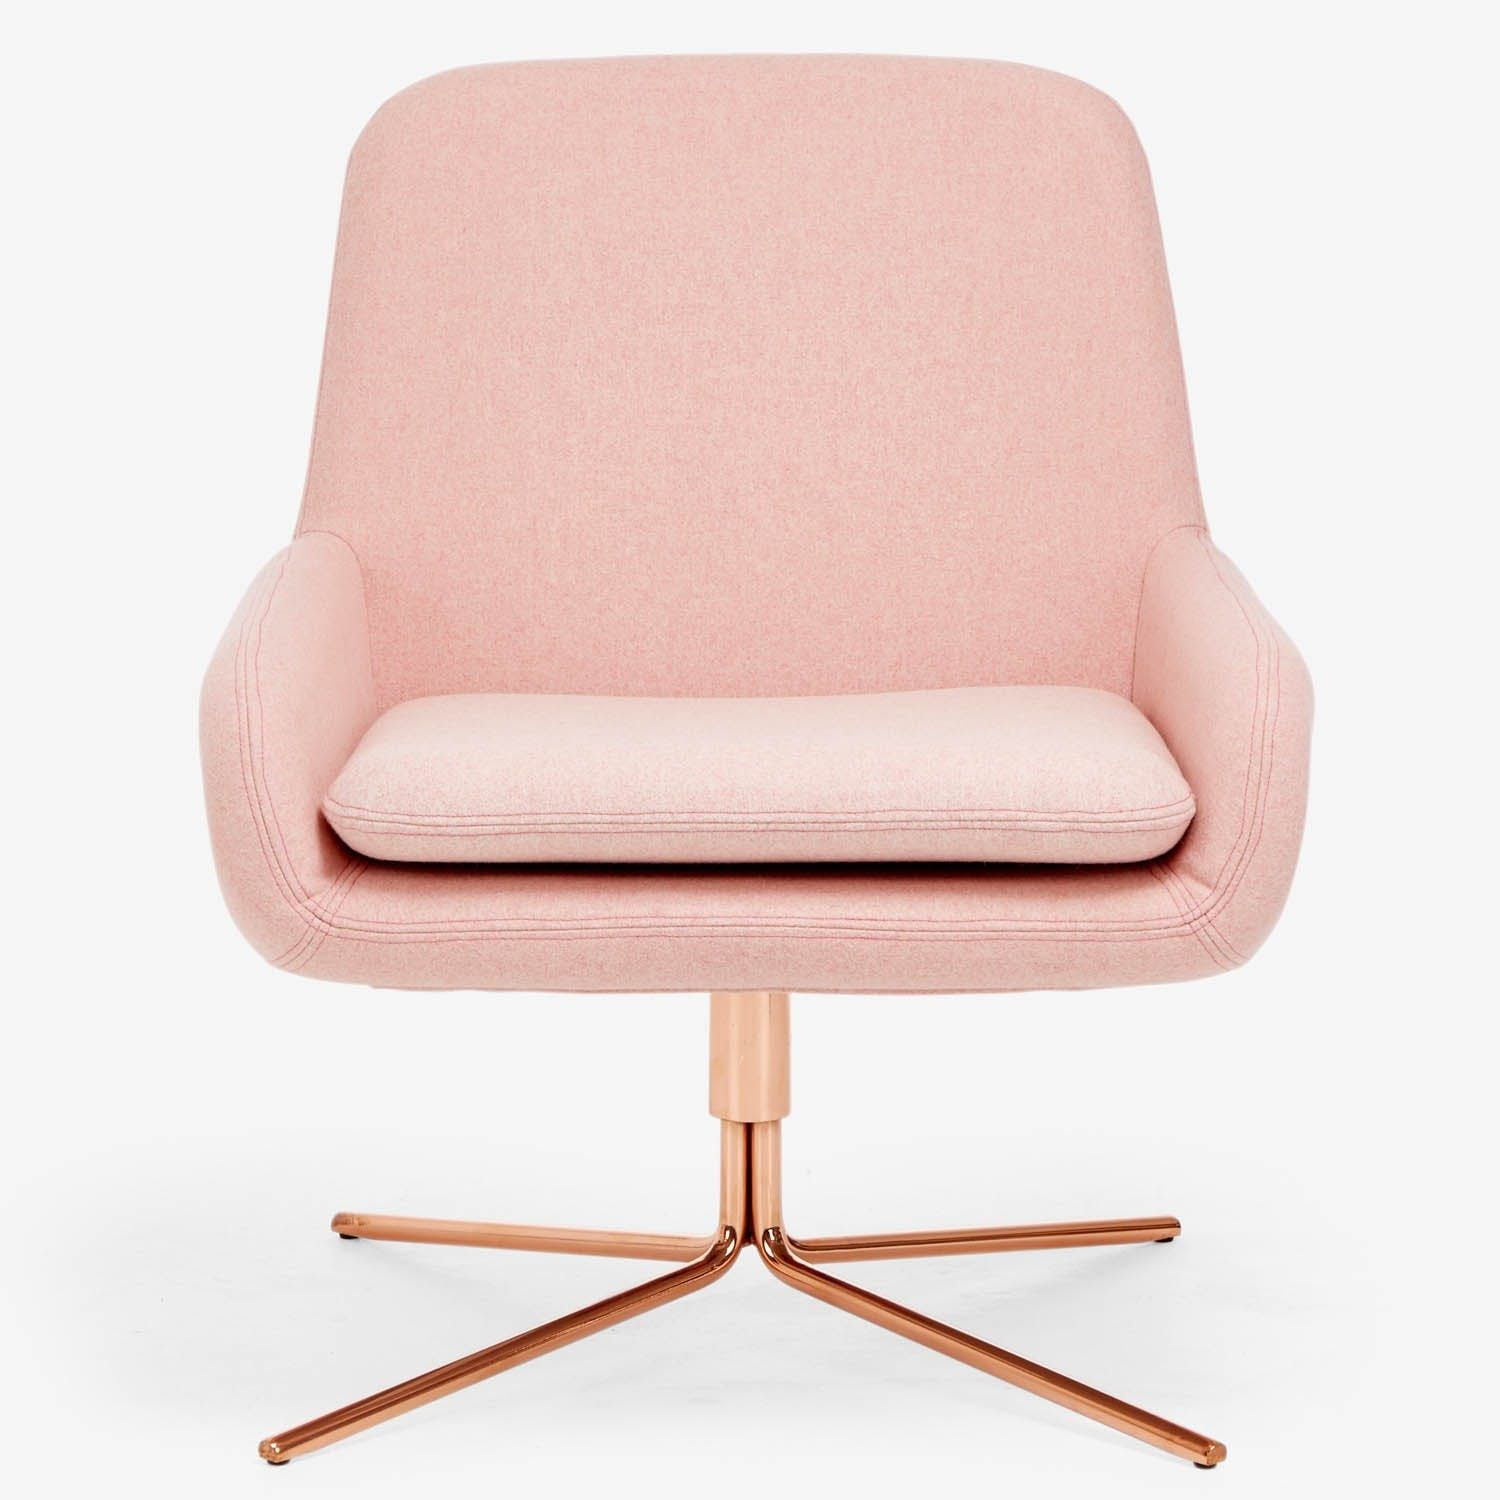 A Glam Home Office With A Pink Modern Office Chair Gold Desk